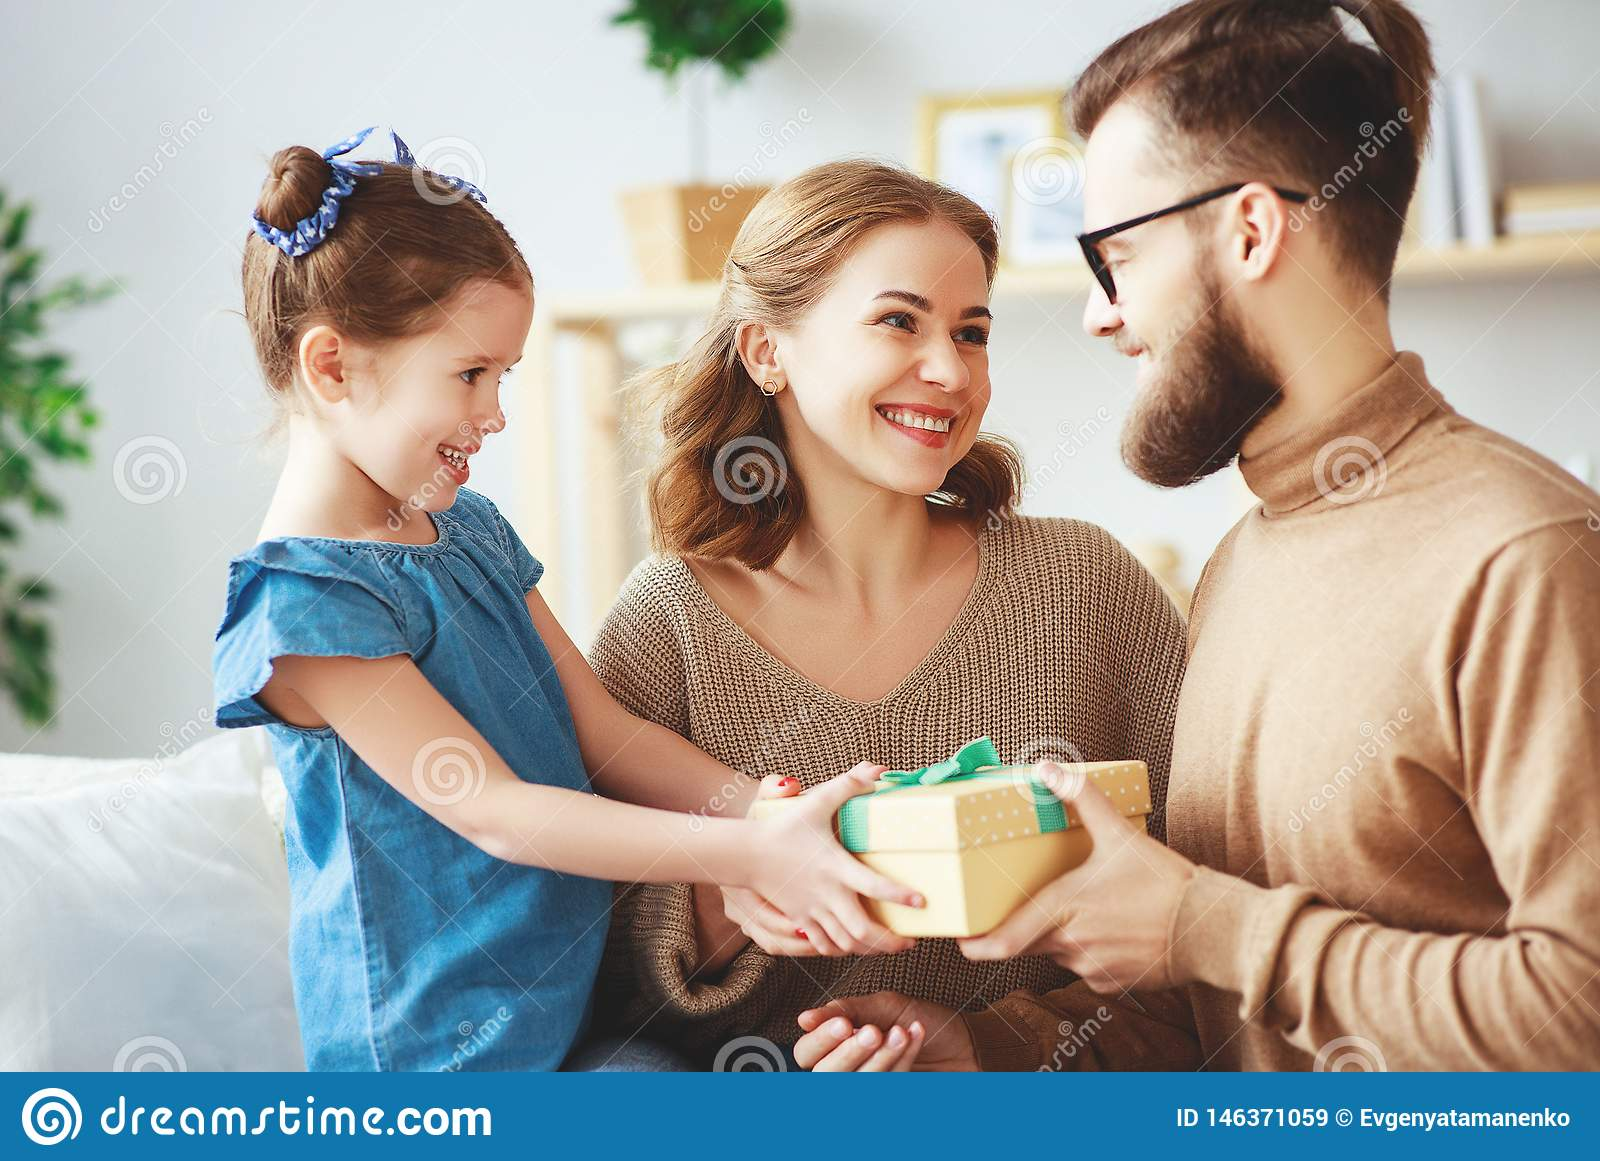 Happy father`s day! family mom and daughter congratulate dad and give gift